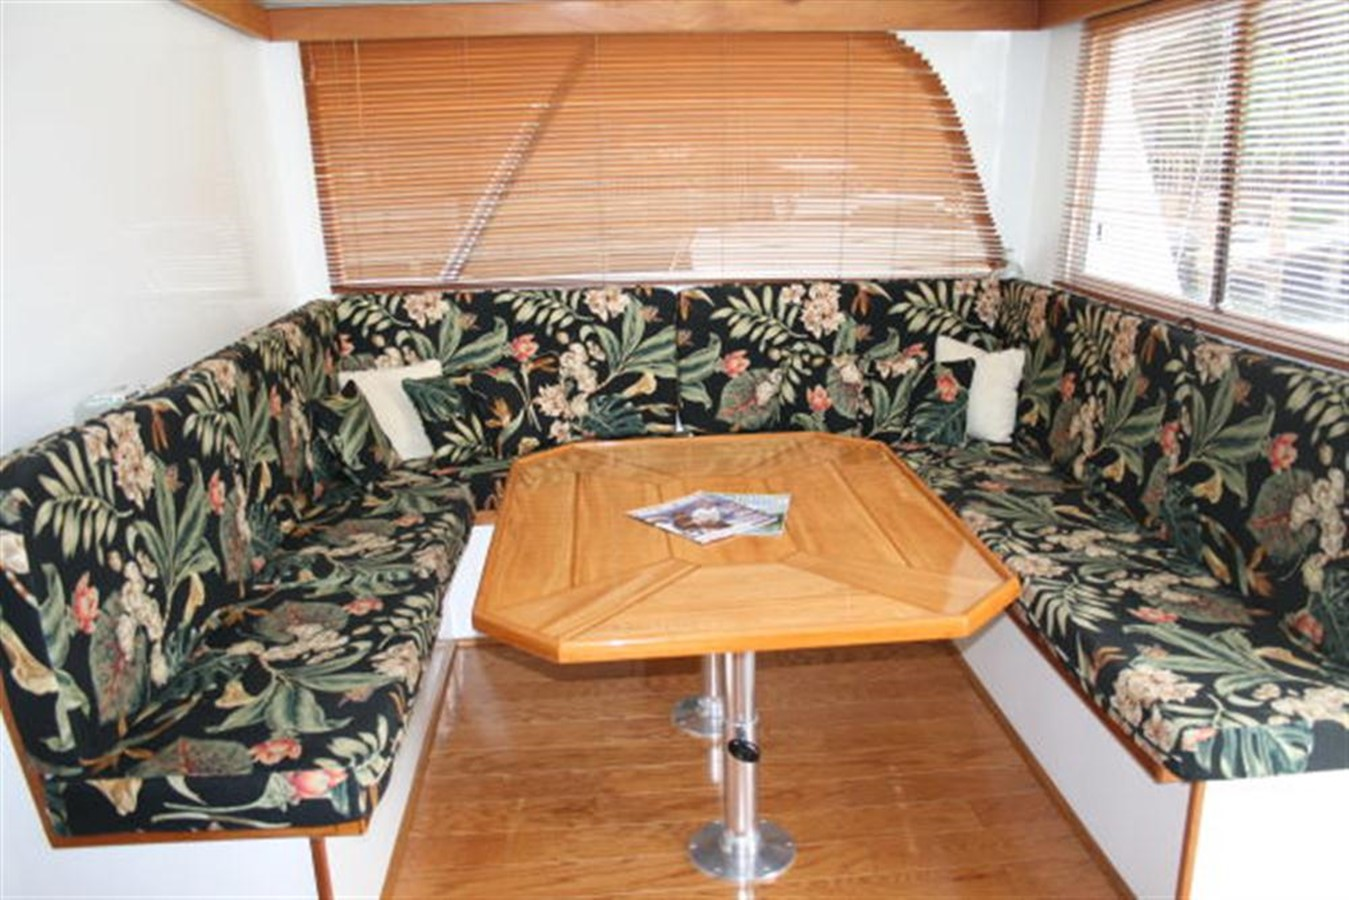 SALON DINING TABLE 1998 CUSTOM Mick Jarrod PowerCat Sportfisher/Dive Boat Catamaran 156652